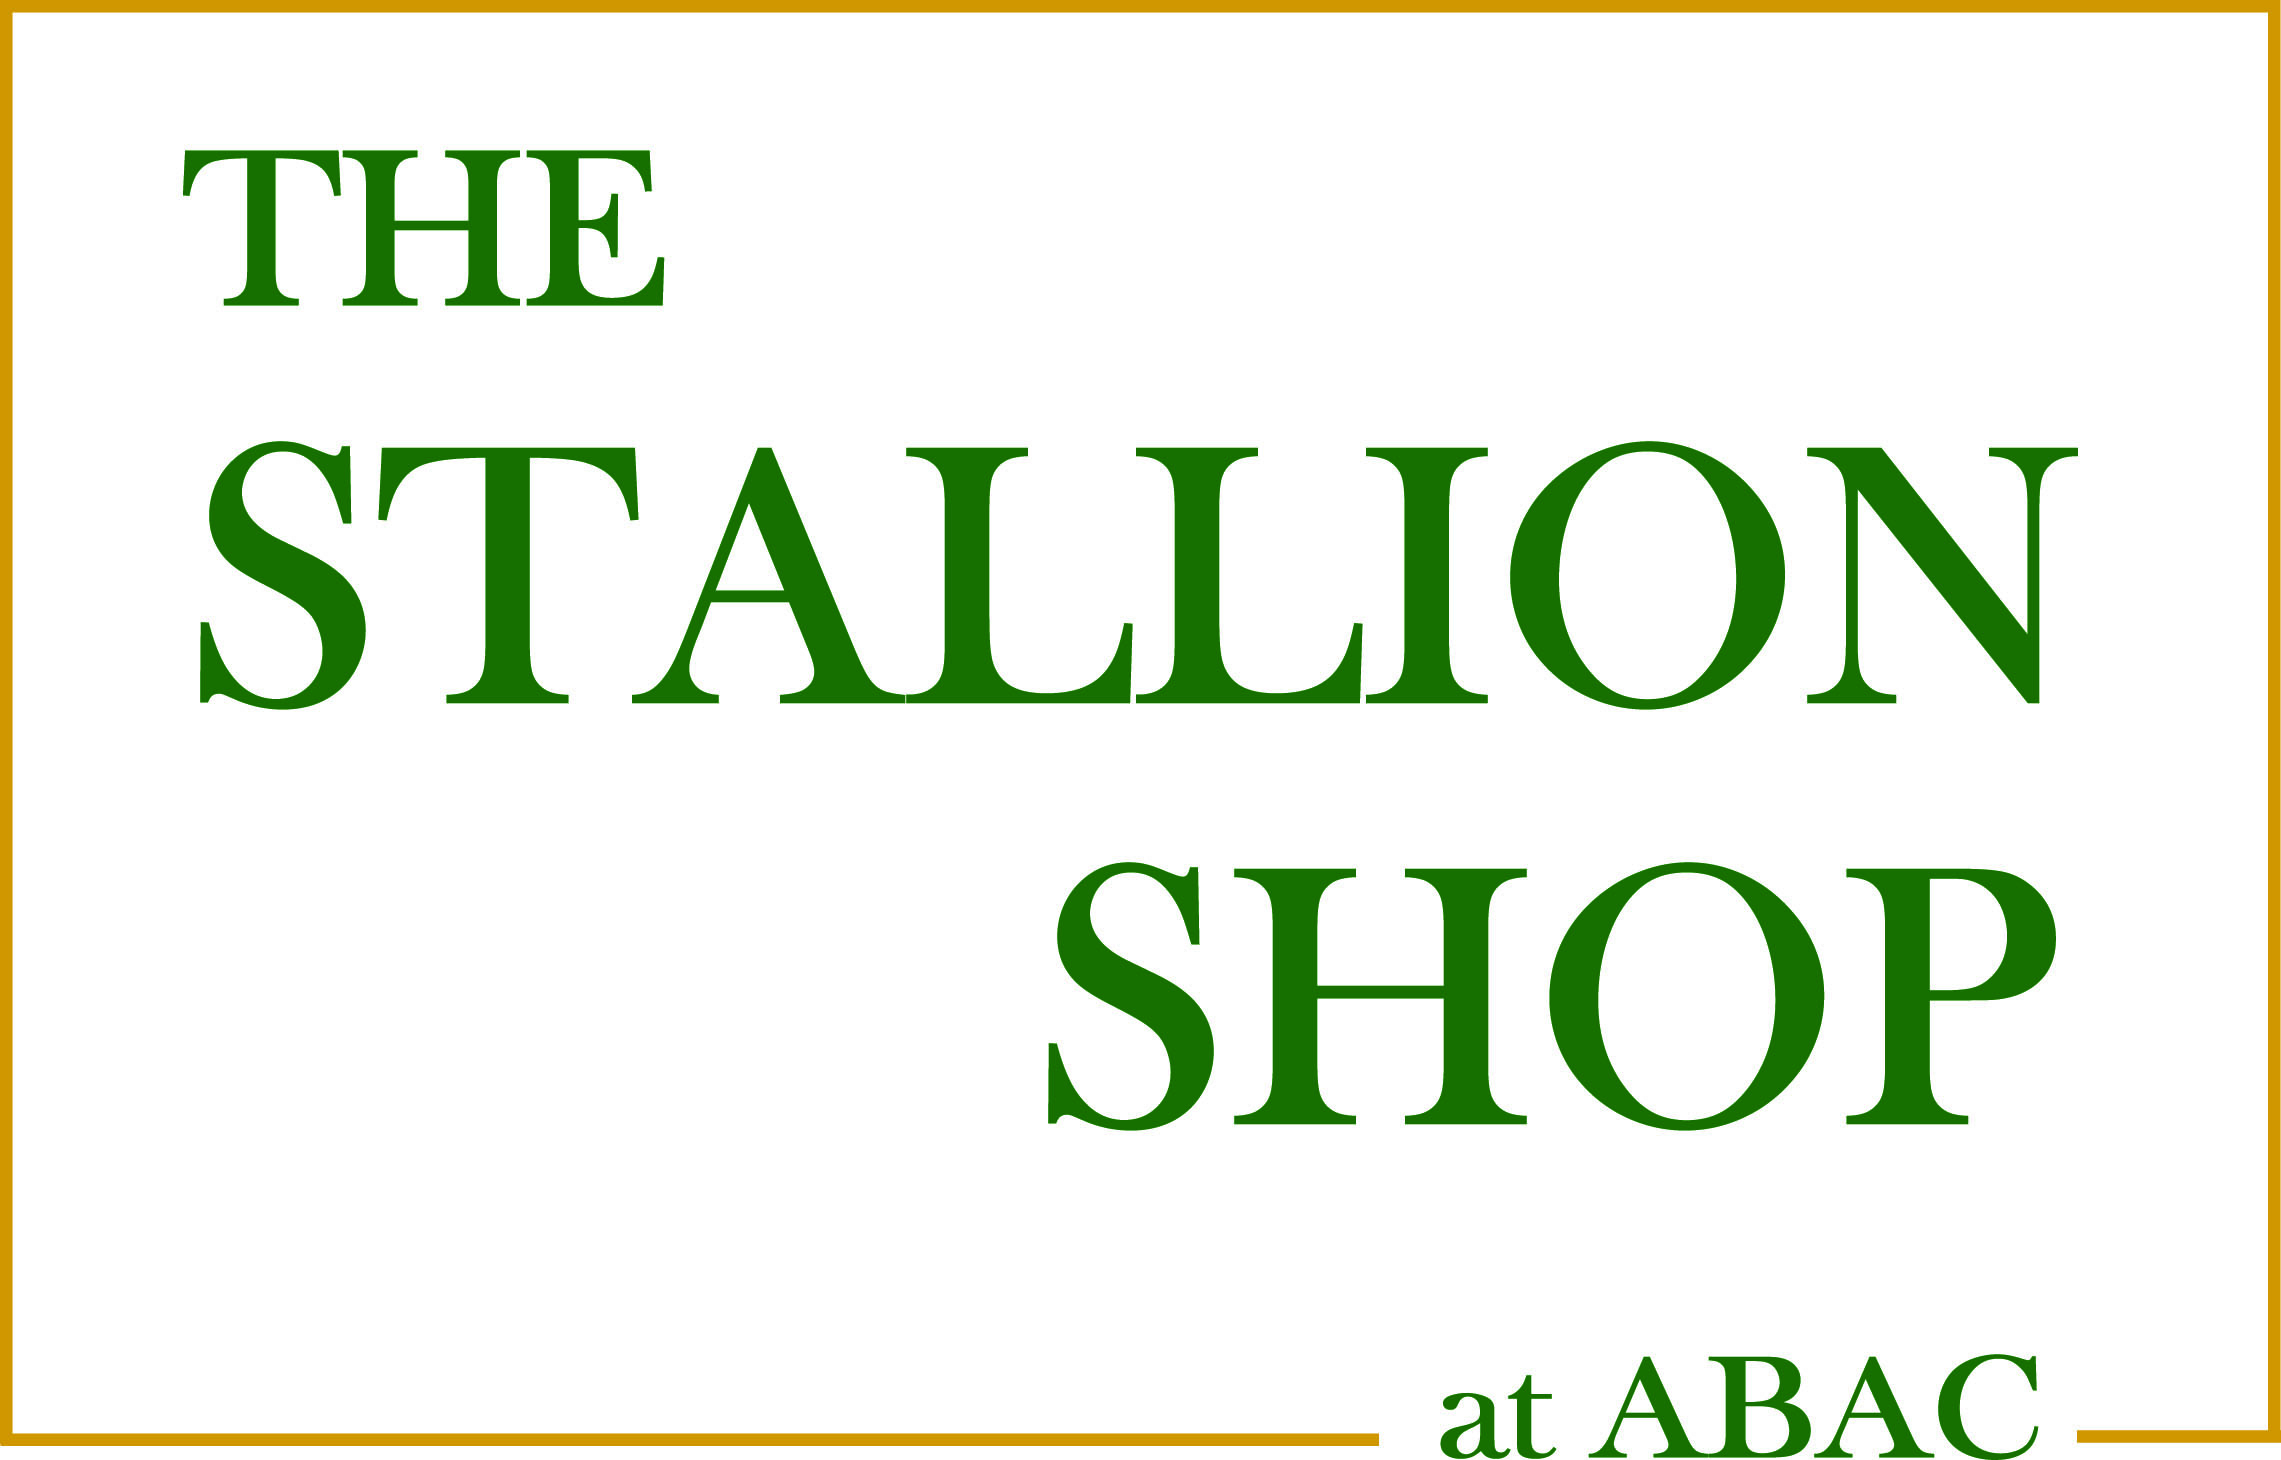 Stallion Shop logo.jpg